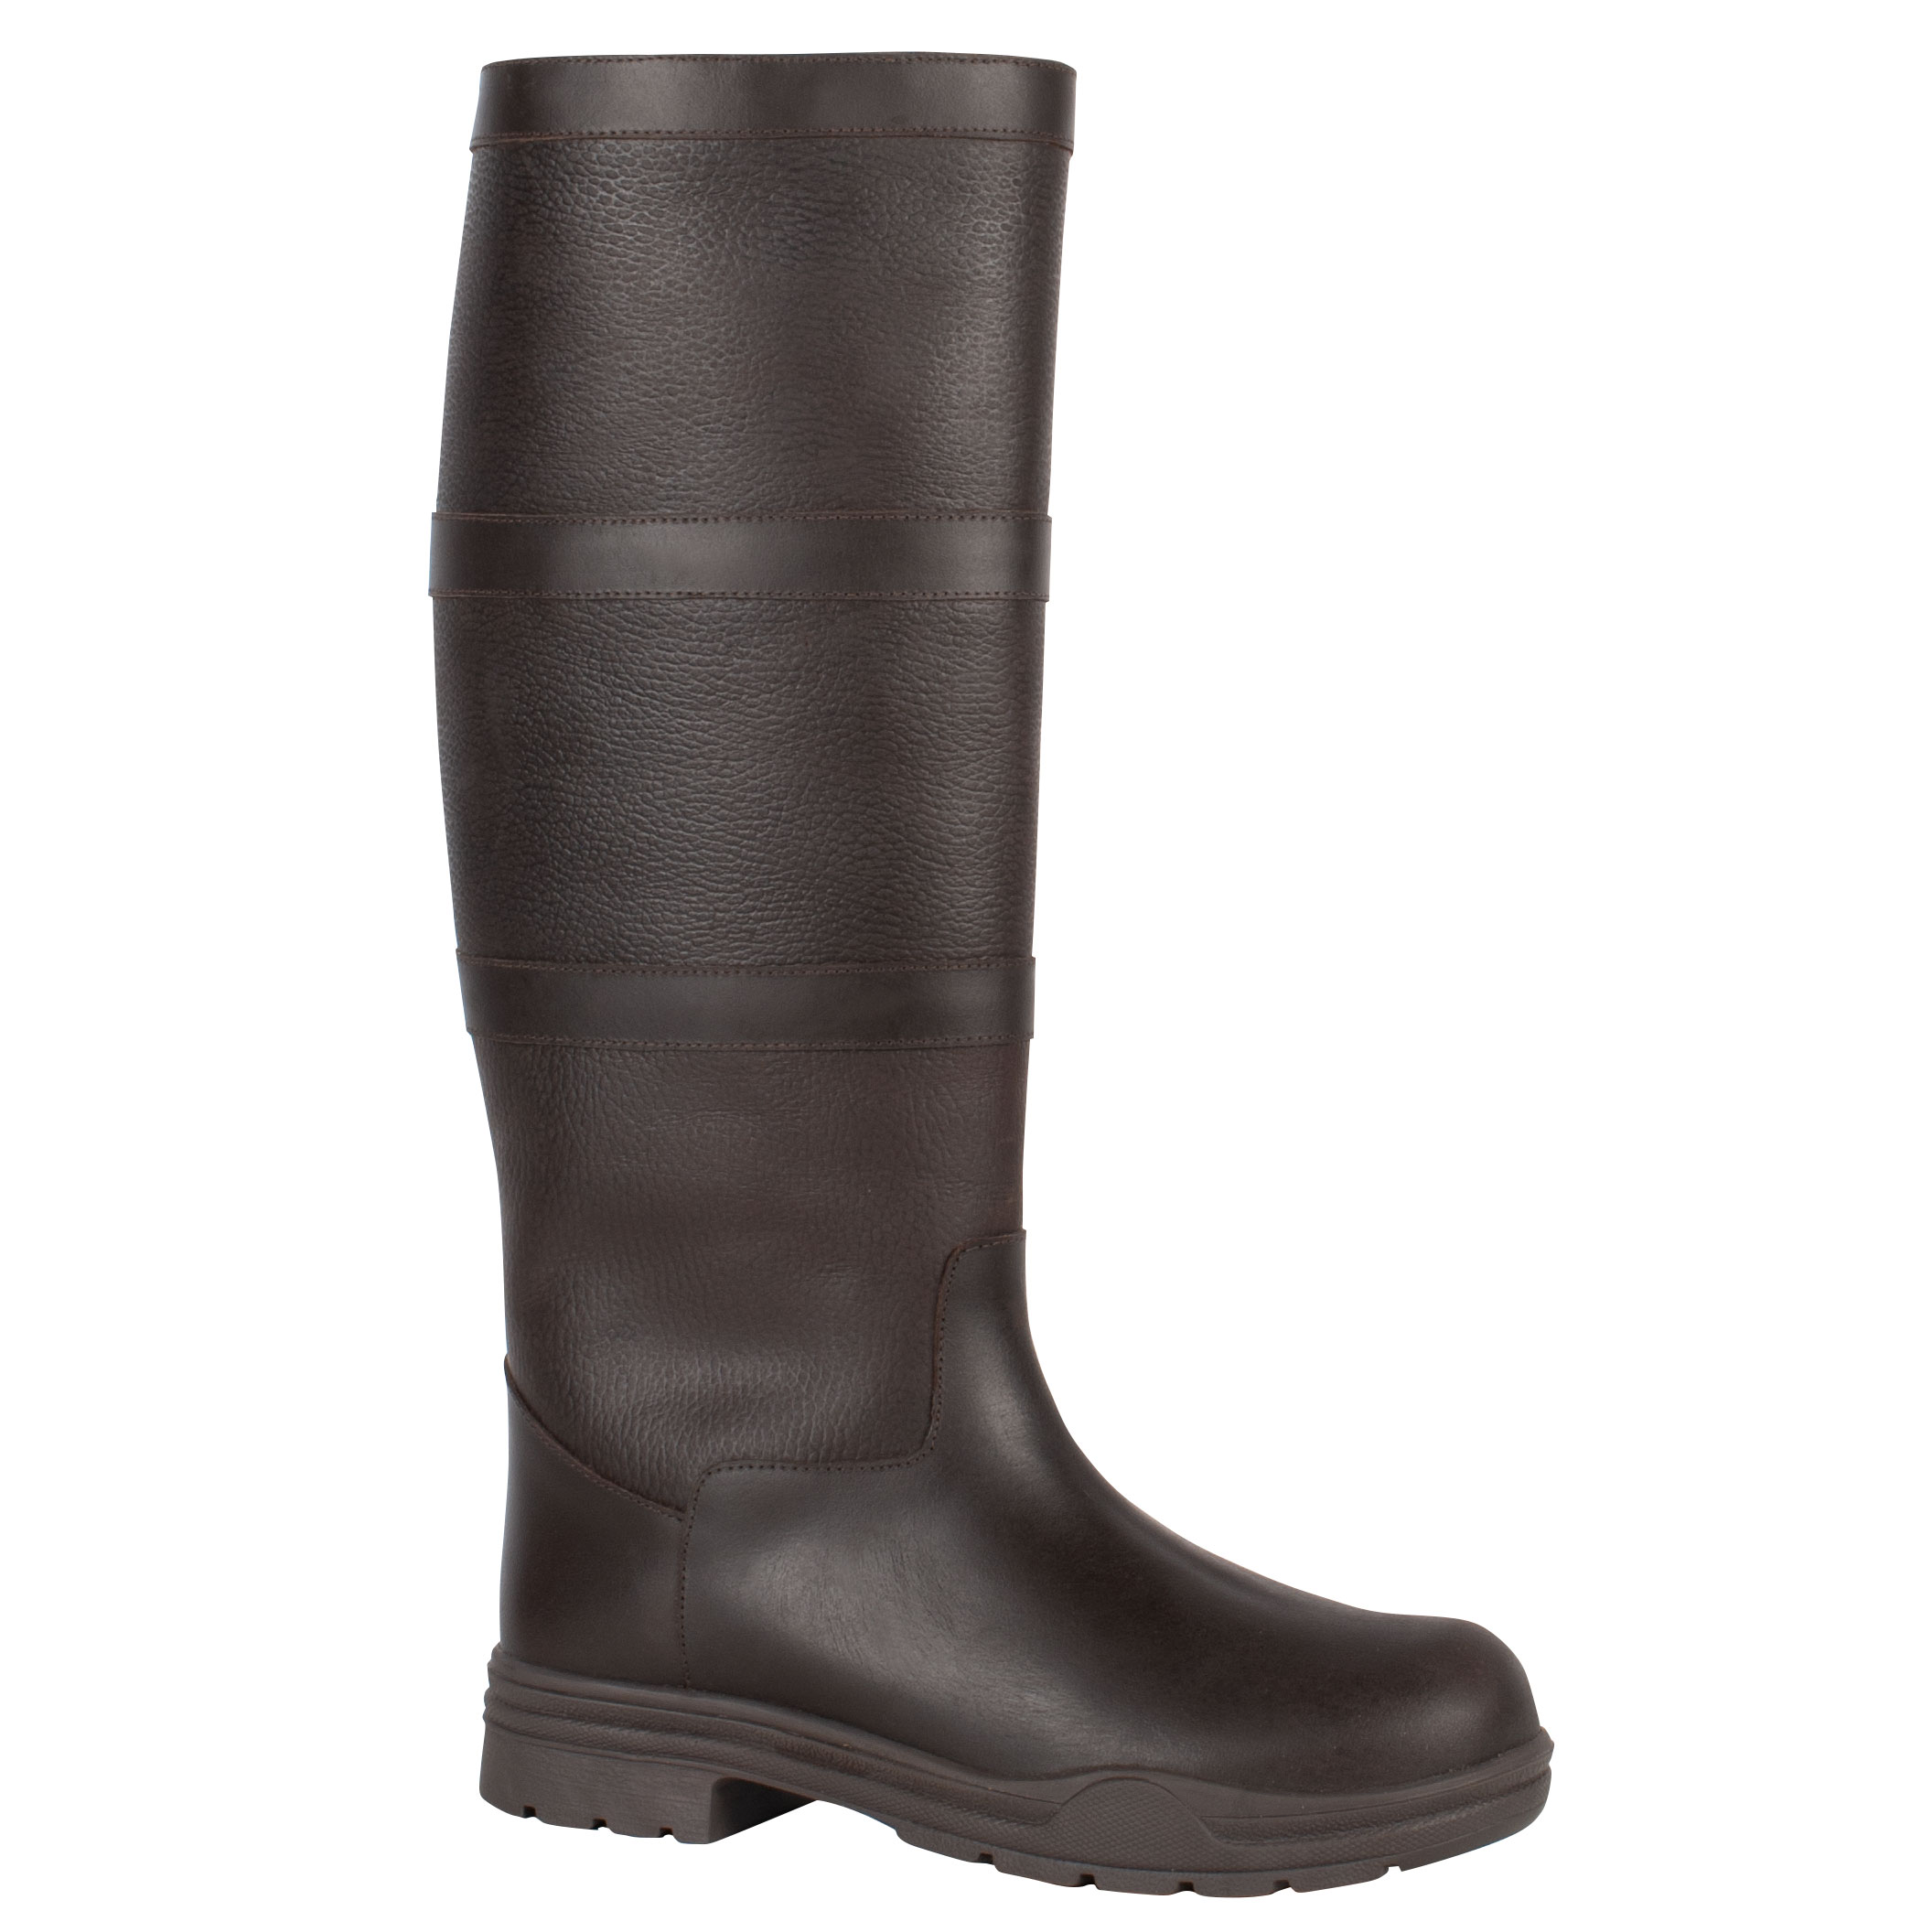 Mondoni Country Boots donkerbruin maat:40